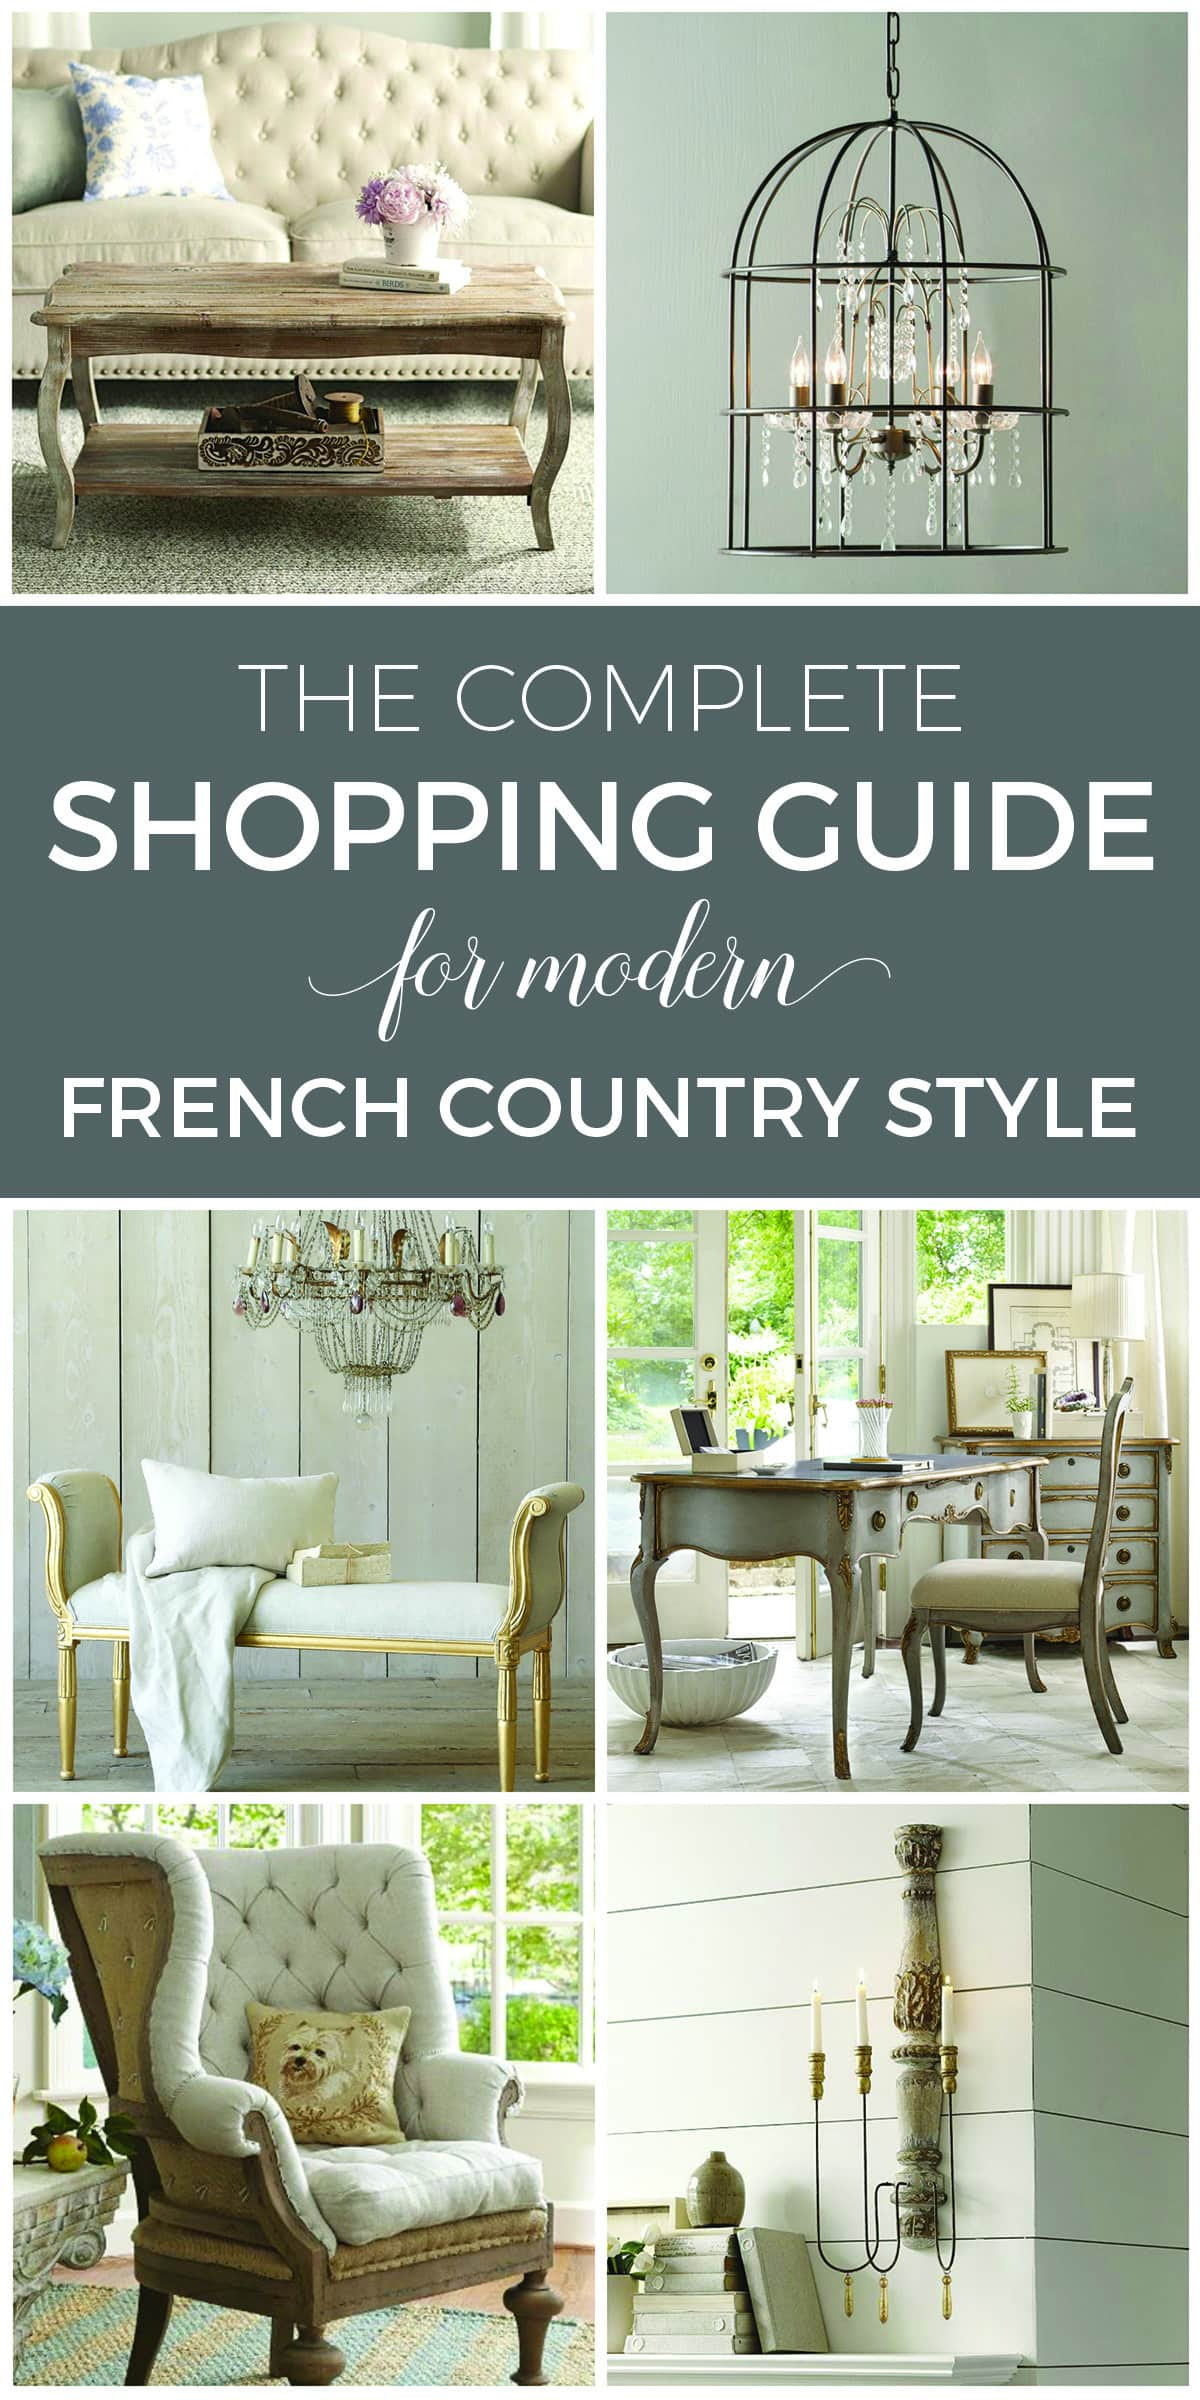 Designthusiasm Shop | Shop my favorites | Shopping guide for modern French Country style